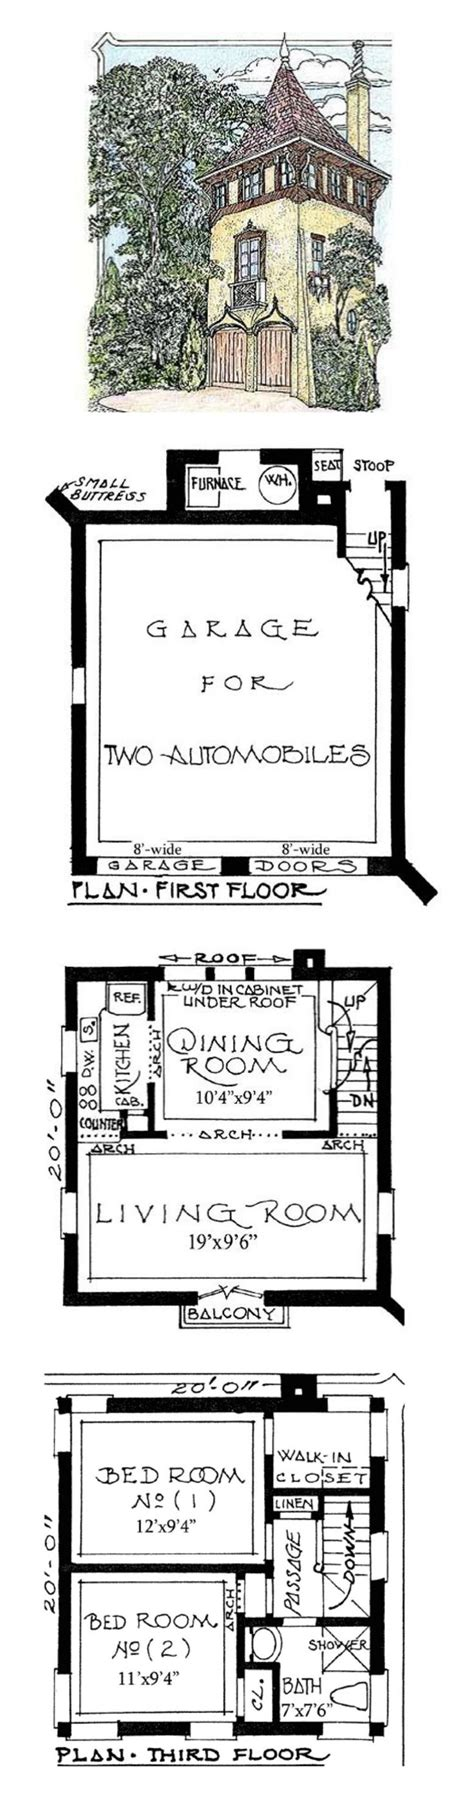 carriage house floor plans 25 best ideas about tower house on fires in washington carriage house plans and